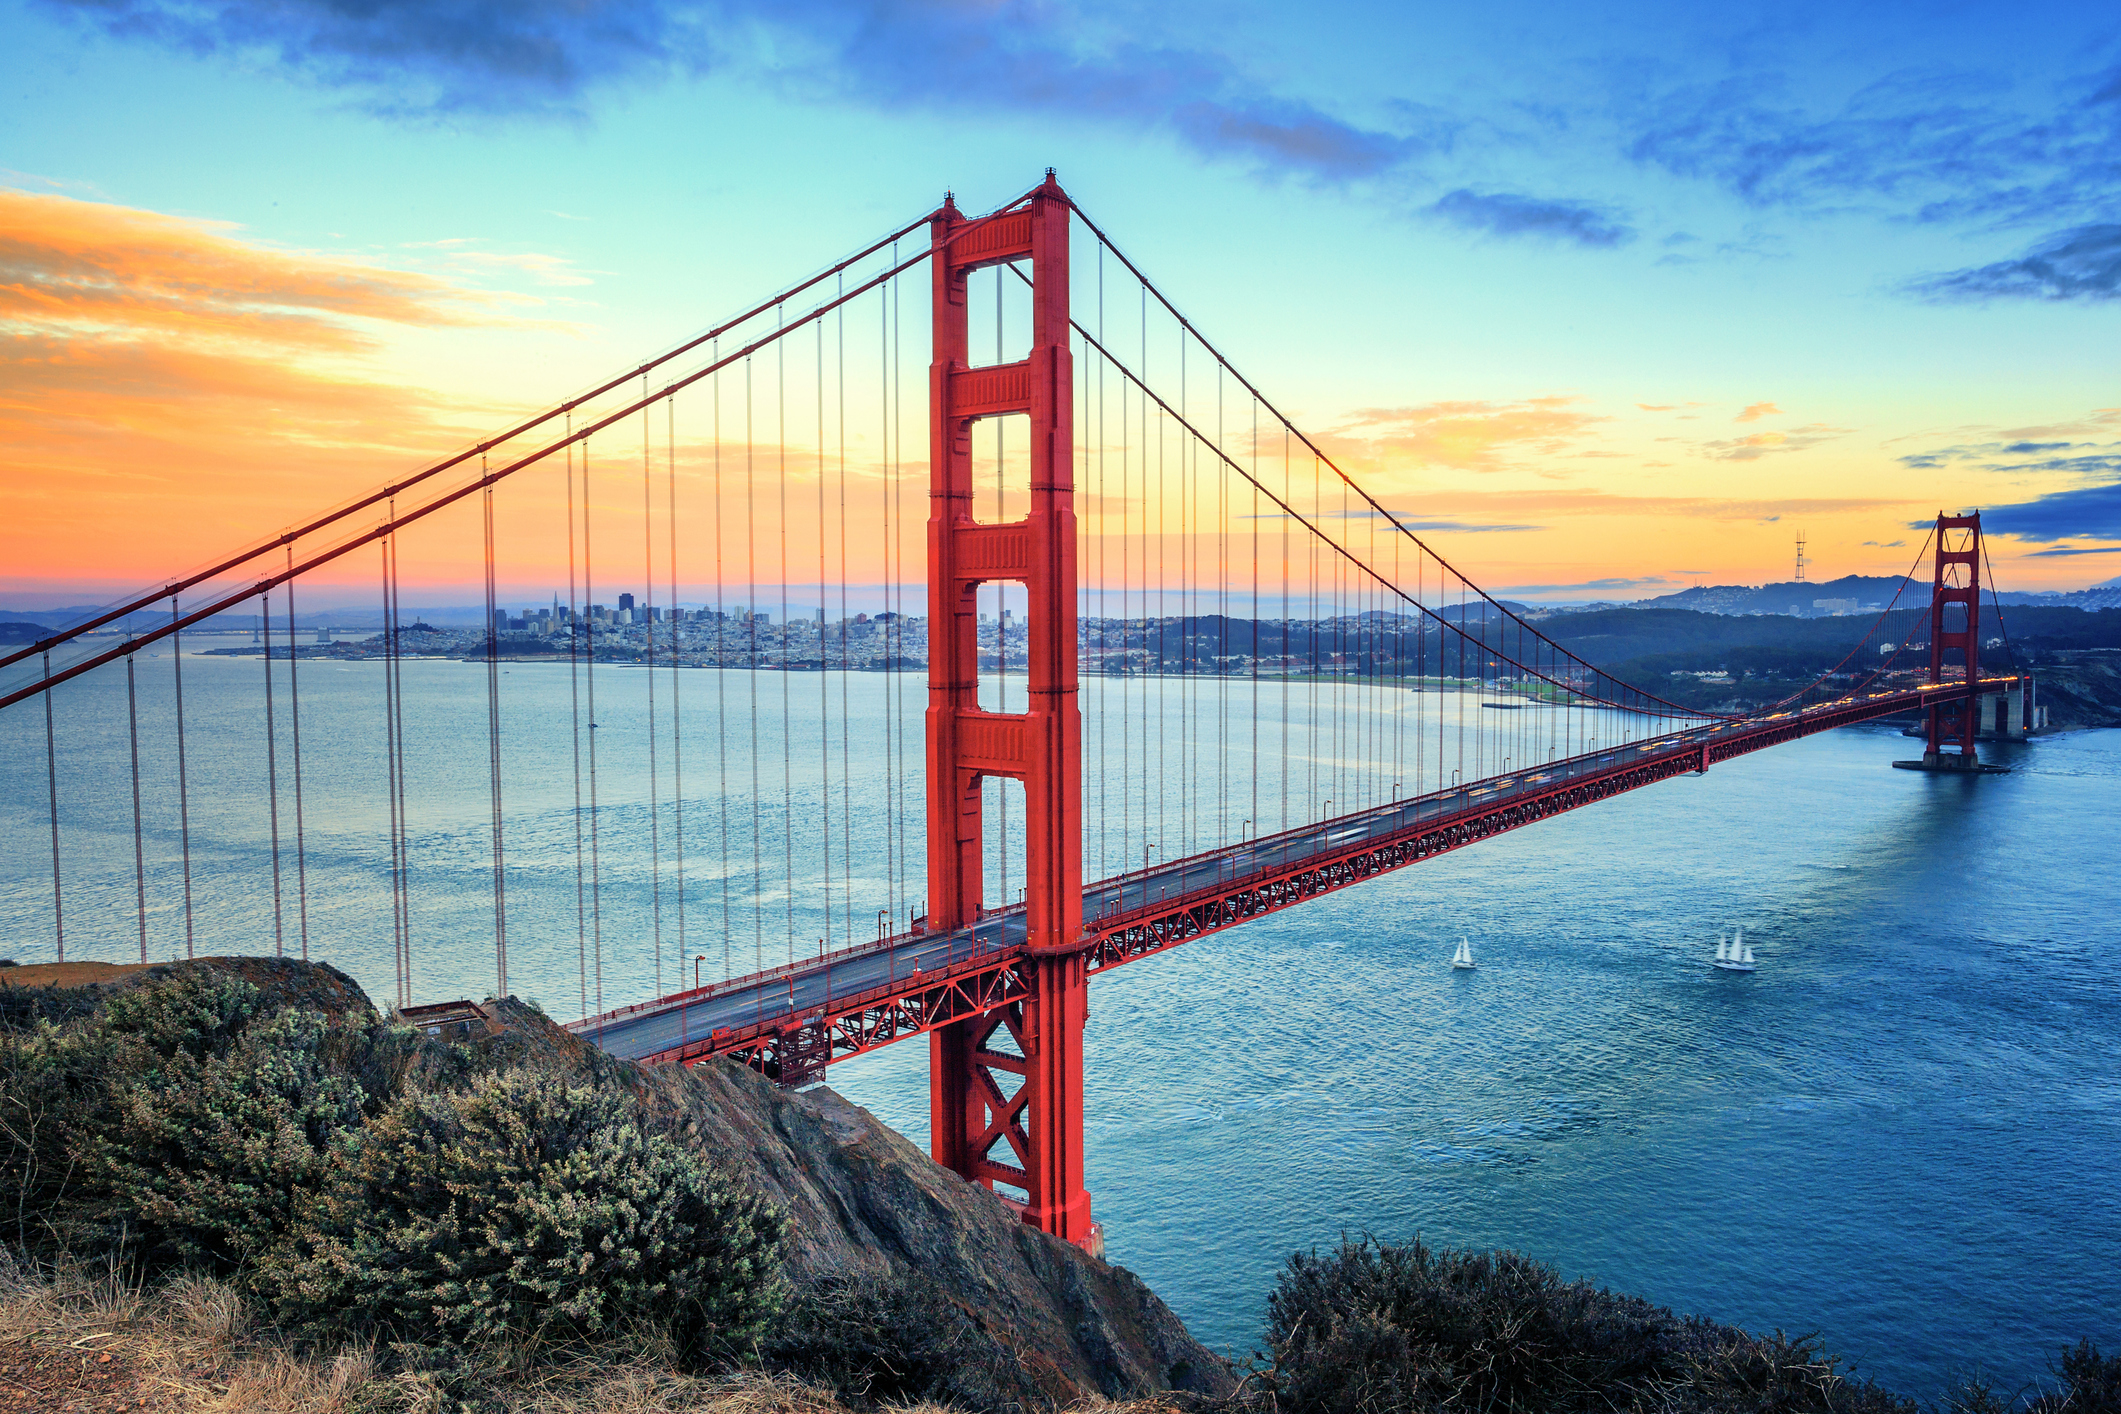 Importance of the Golden Gate Bridge